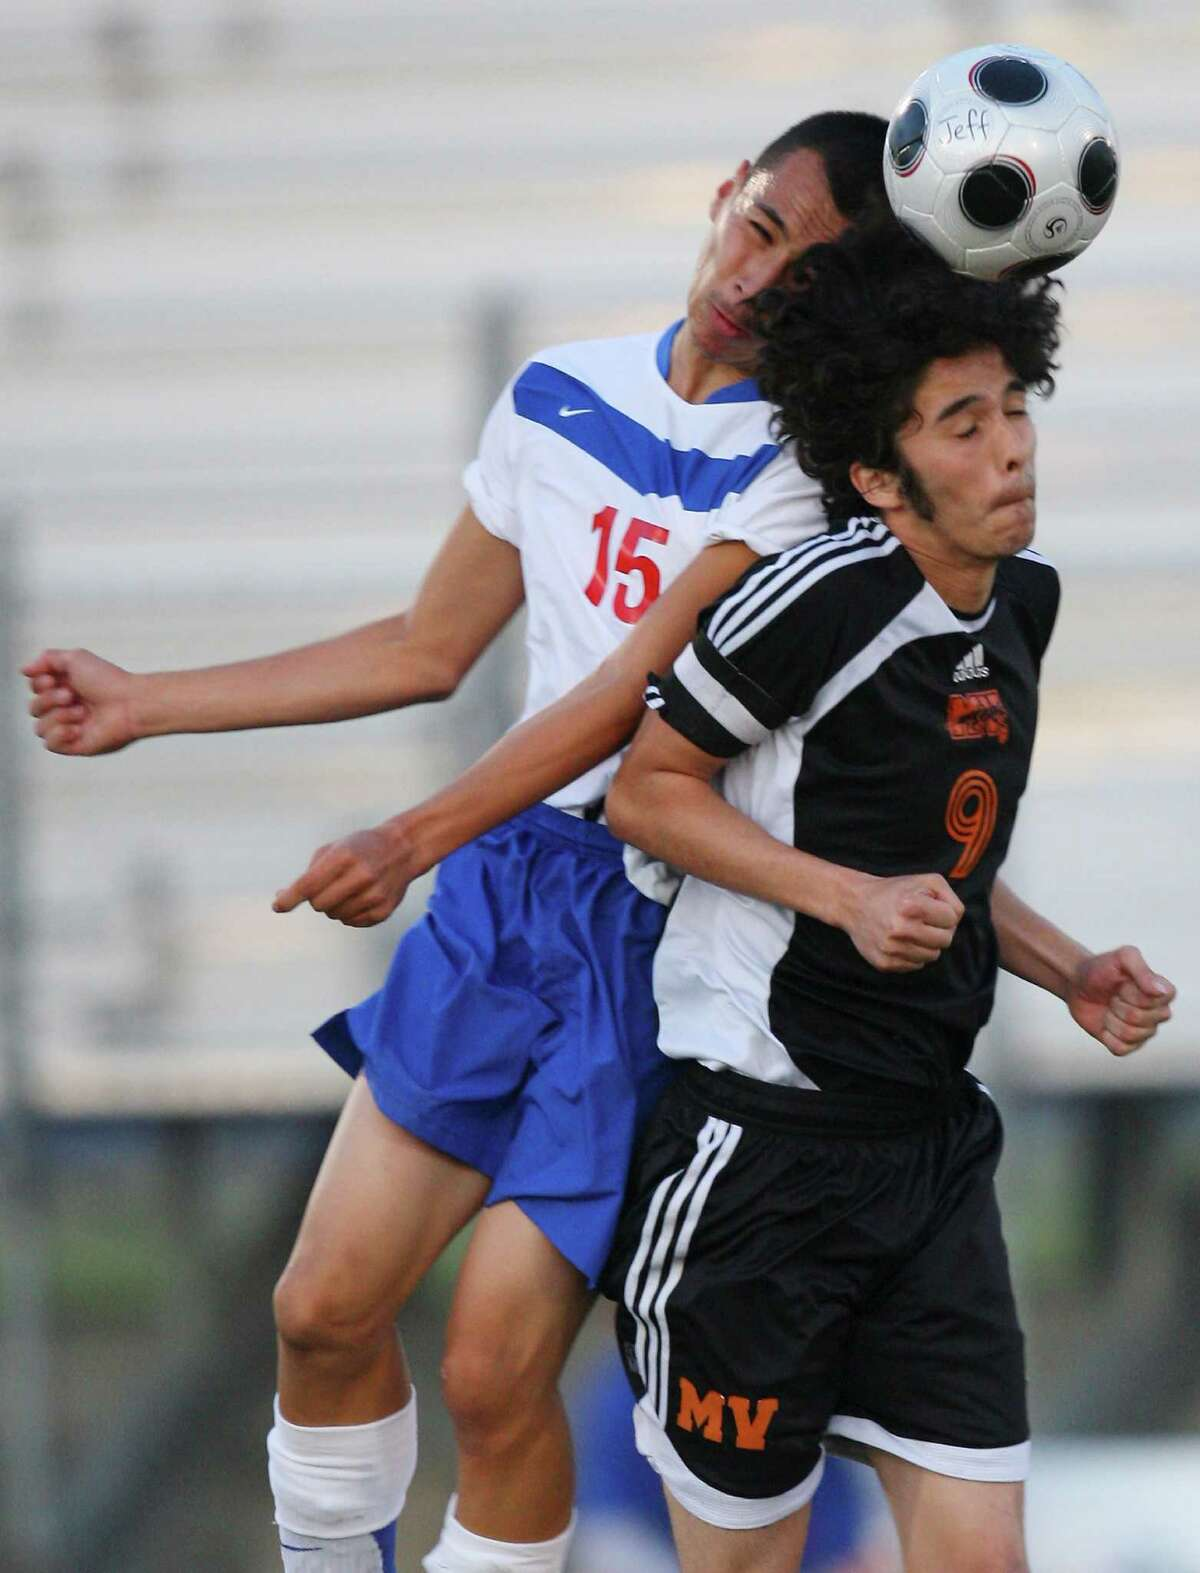 Jefferson's Ceasar Ramirez (left) and Medina Valley's Christian Moreno go up for a header during first half action on March 20, 2009.